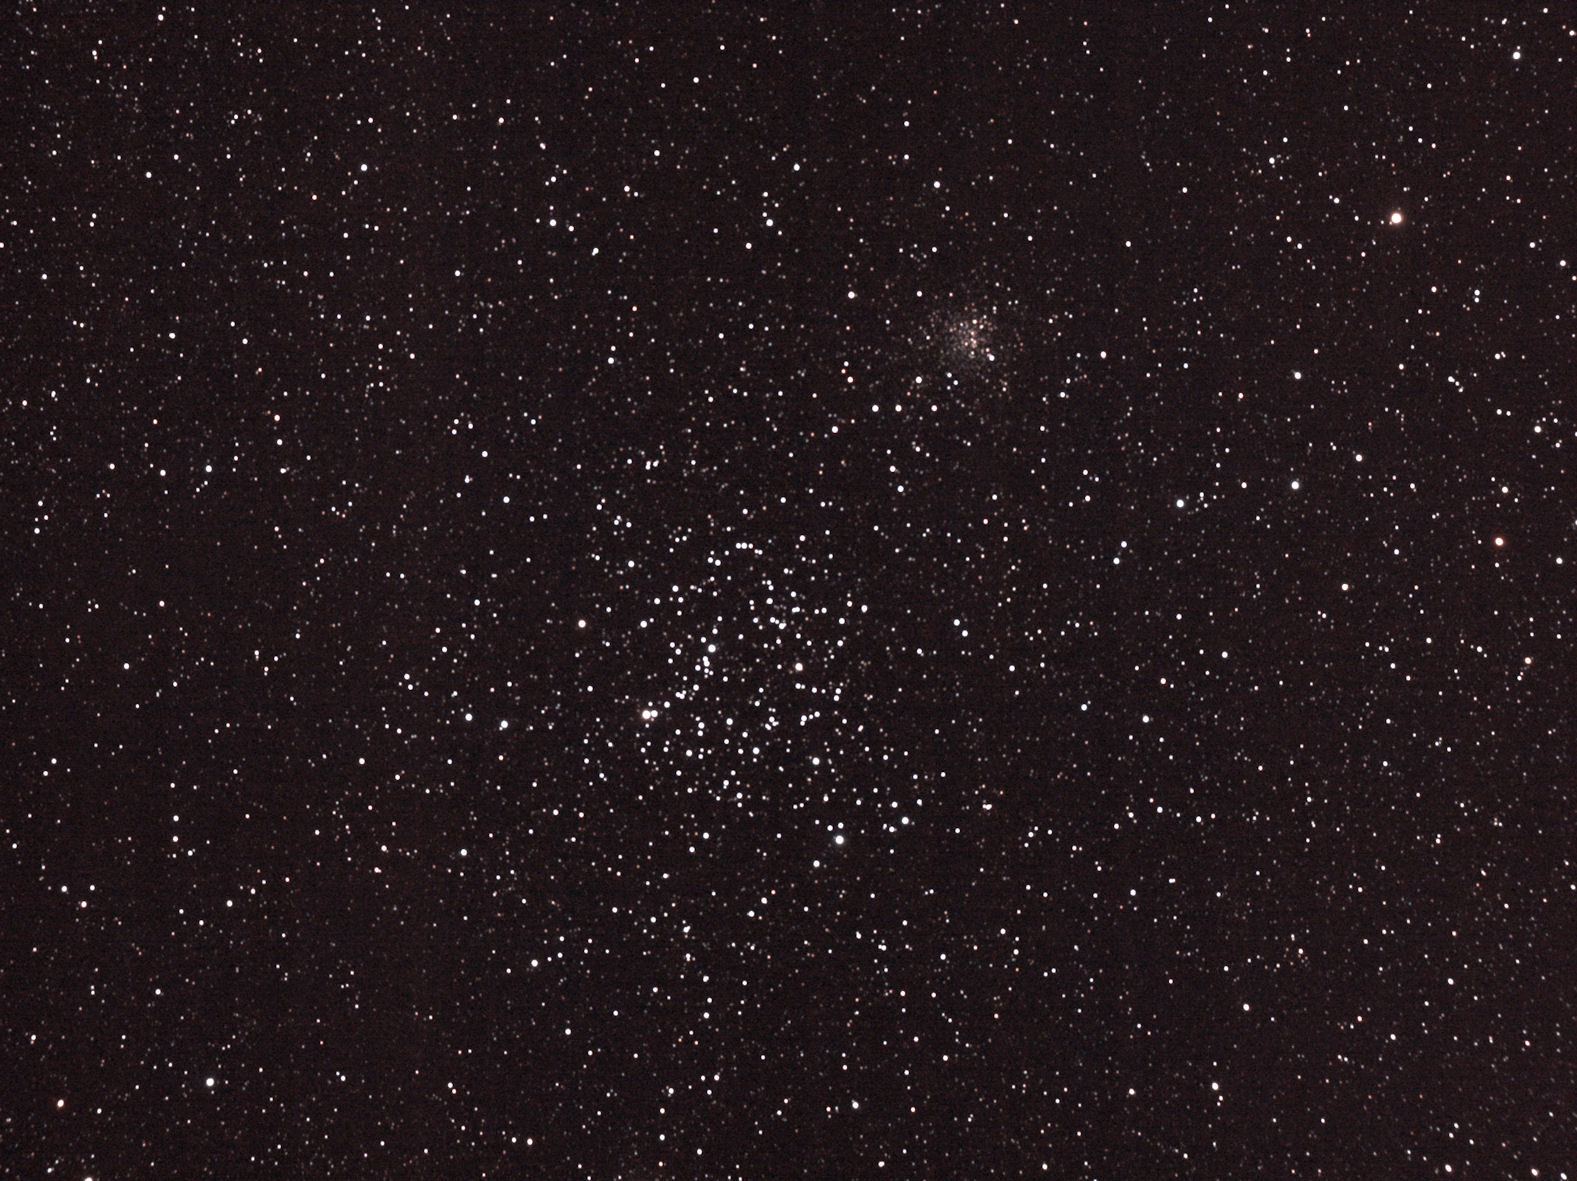 M35 with NGC 2158